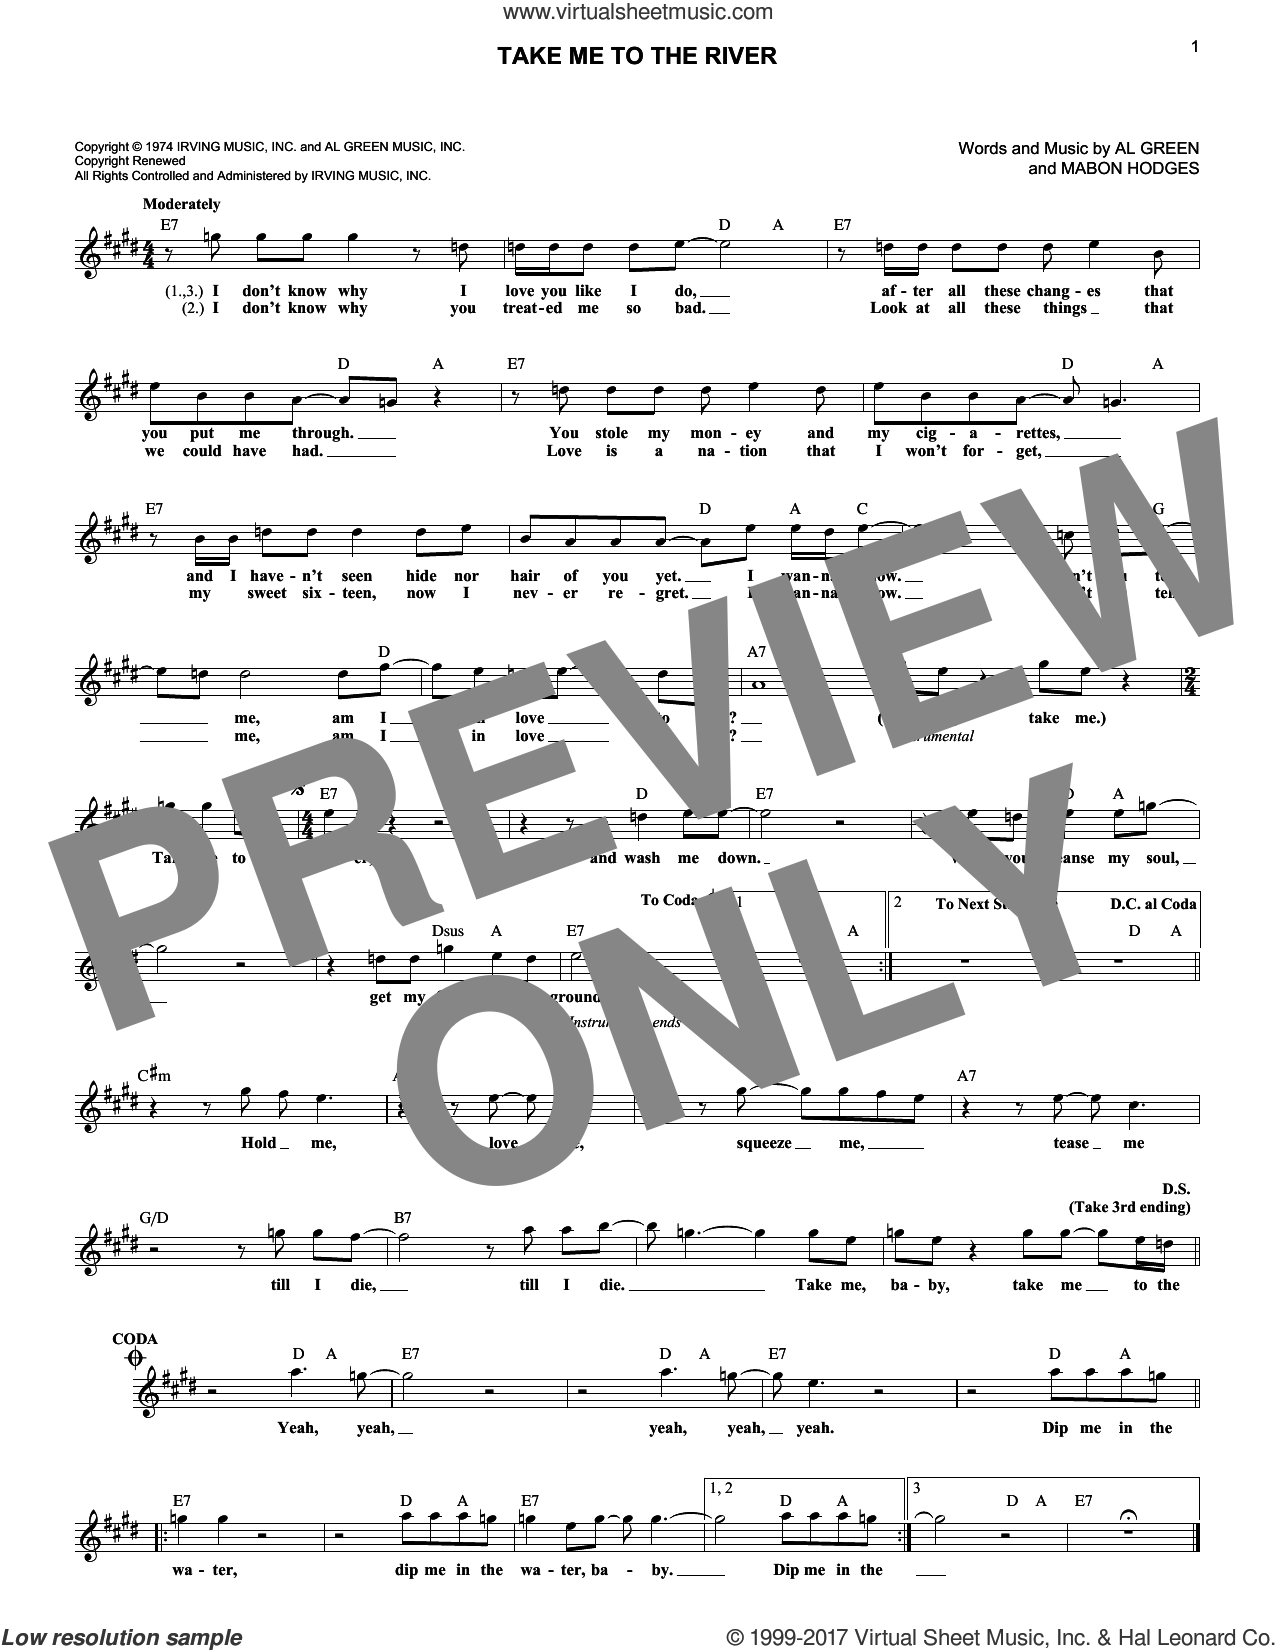 Take Me To The River sheet music for voice and other instruments (fake book) by Al Green, Annie Lennox and Mabon Hodges, intermediate skill level